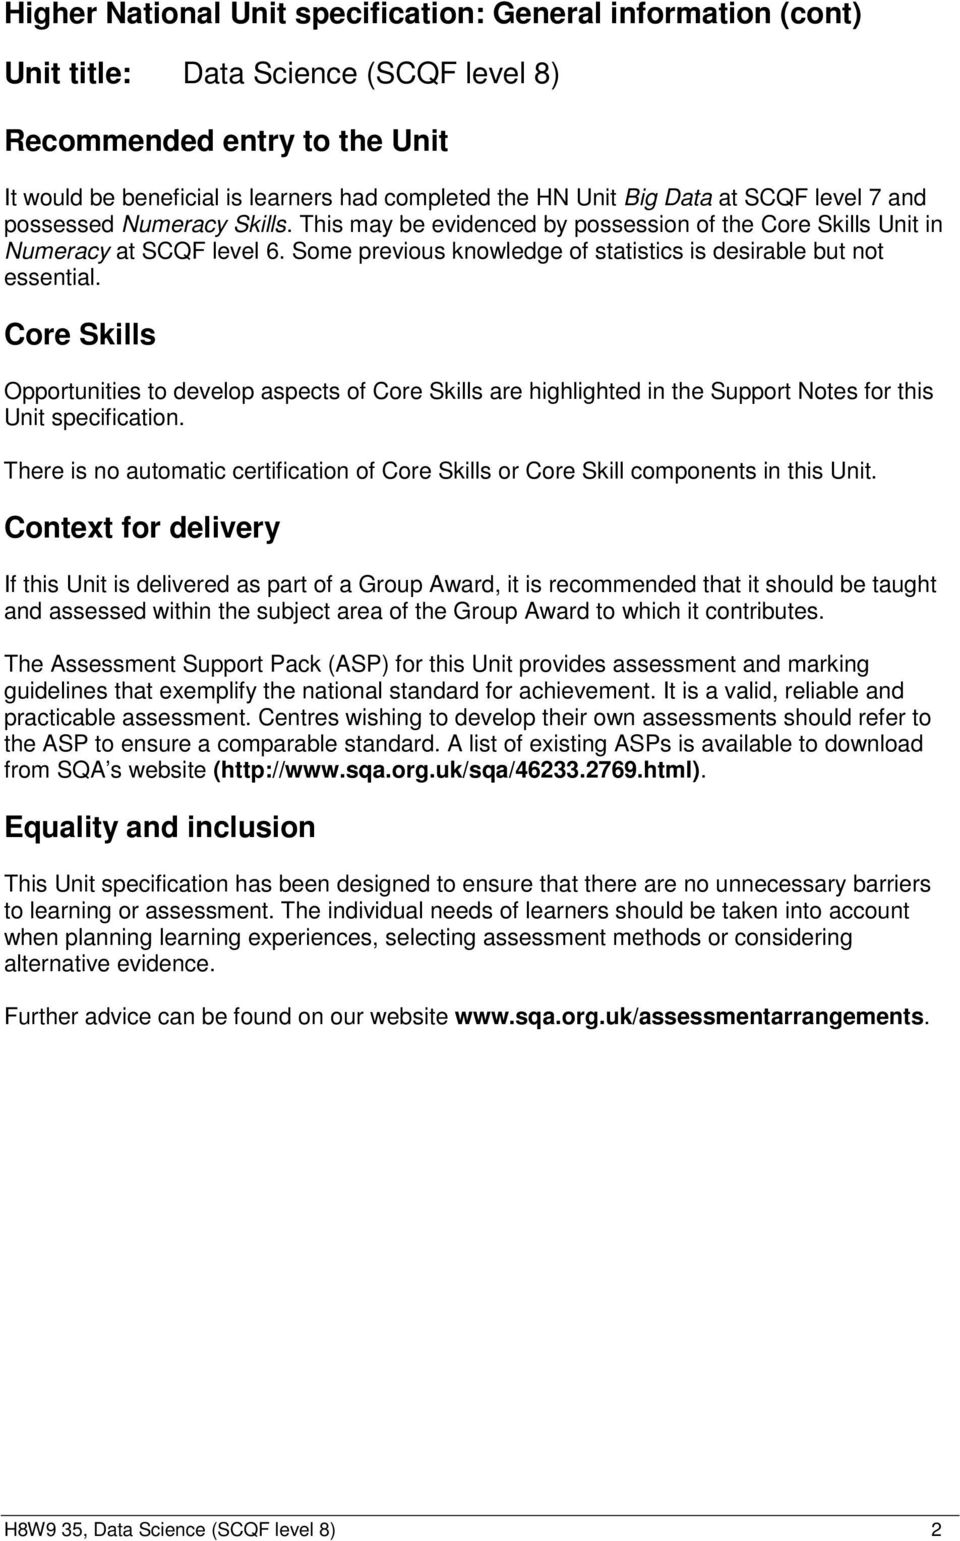 Core Skills Opportunities to develop aspects of Core Skills are highlighted in the Support Notes for this Unit specification.